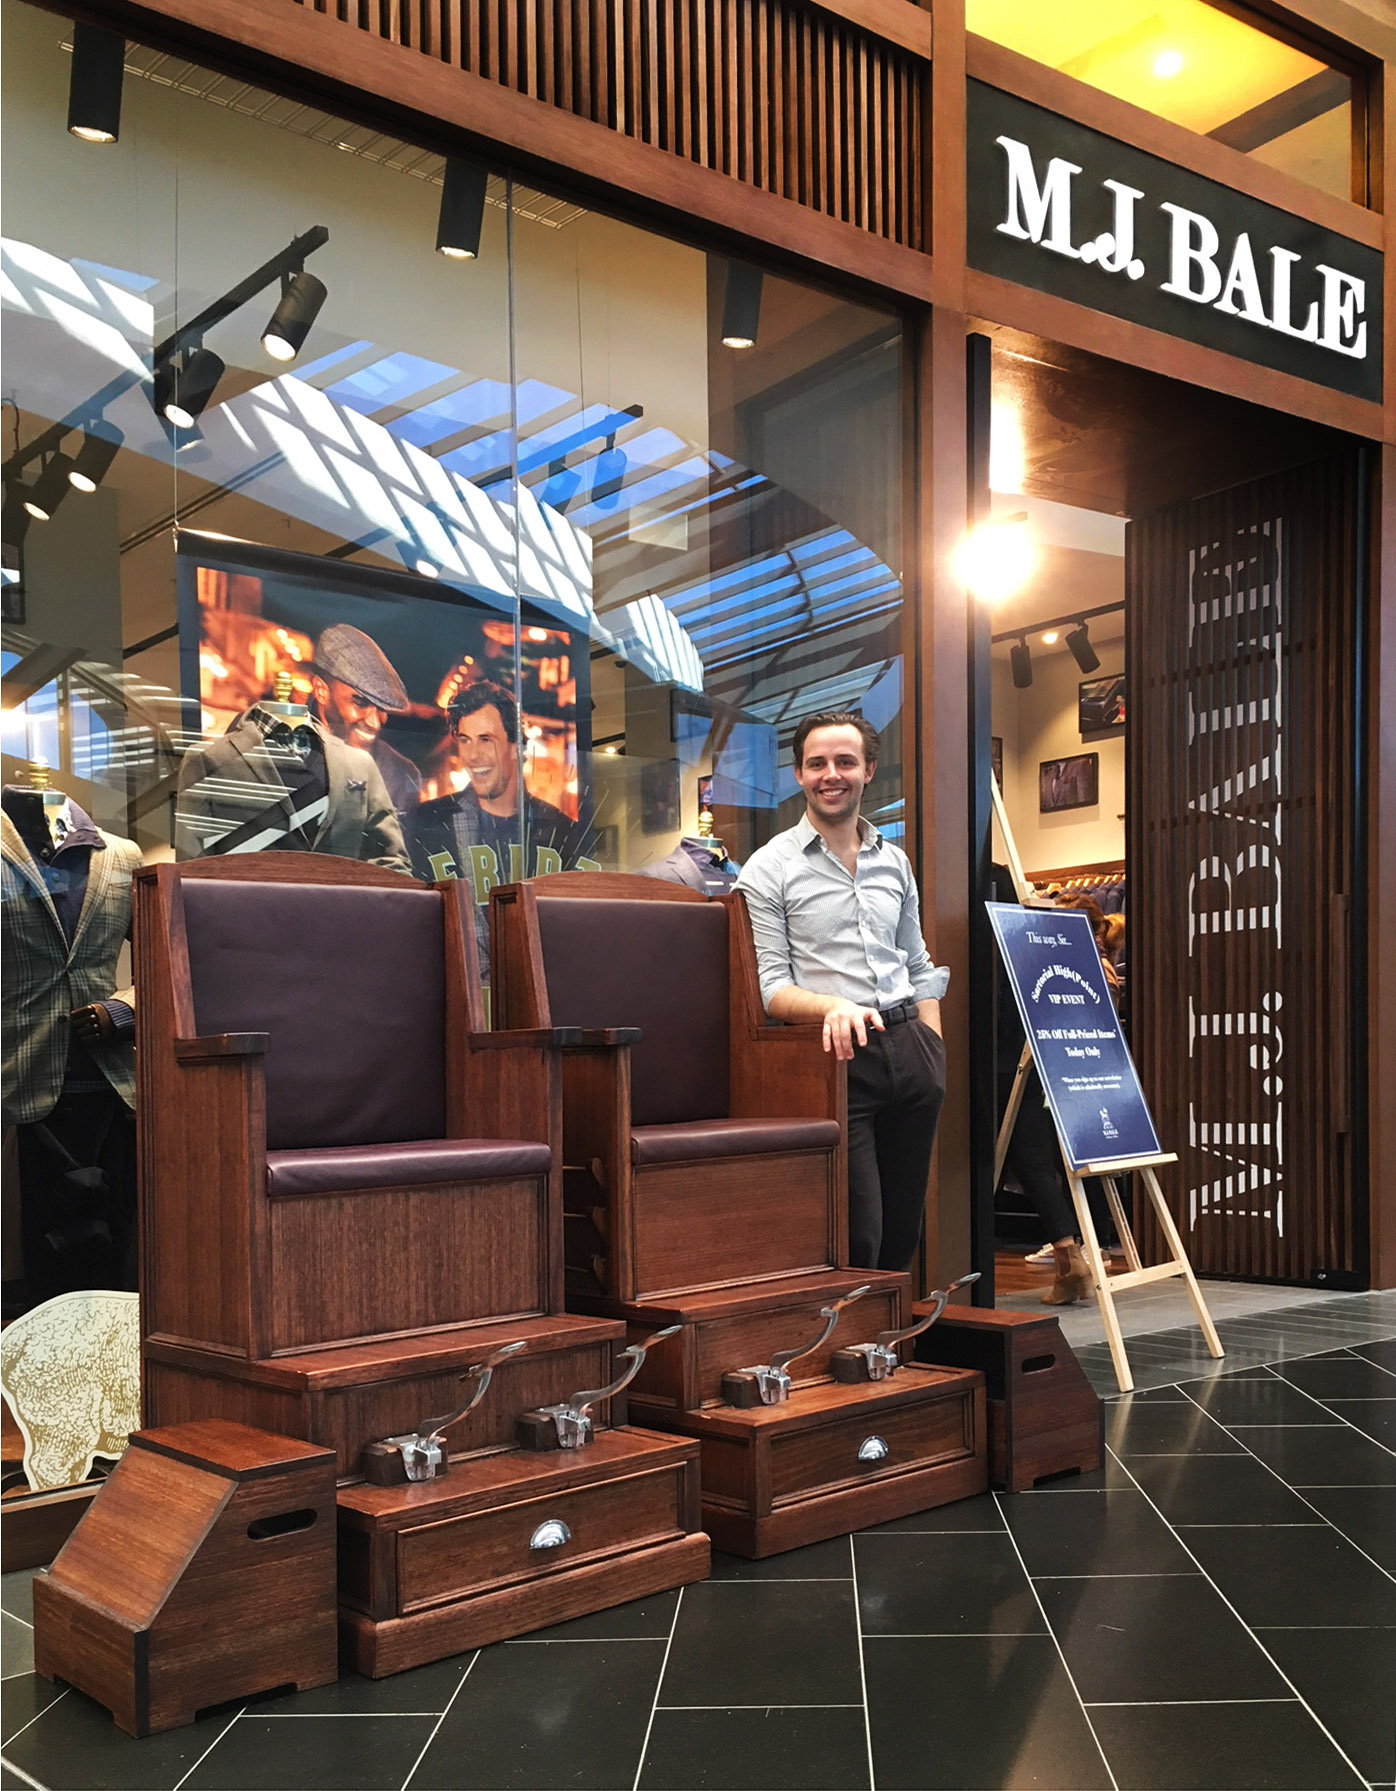 M.J. Bale store launch at Highpoint Shopping Centre